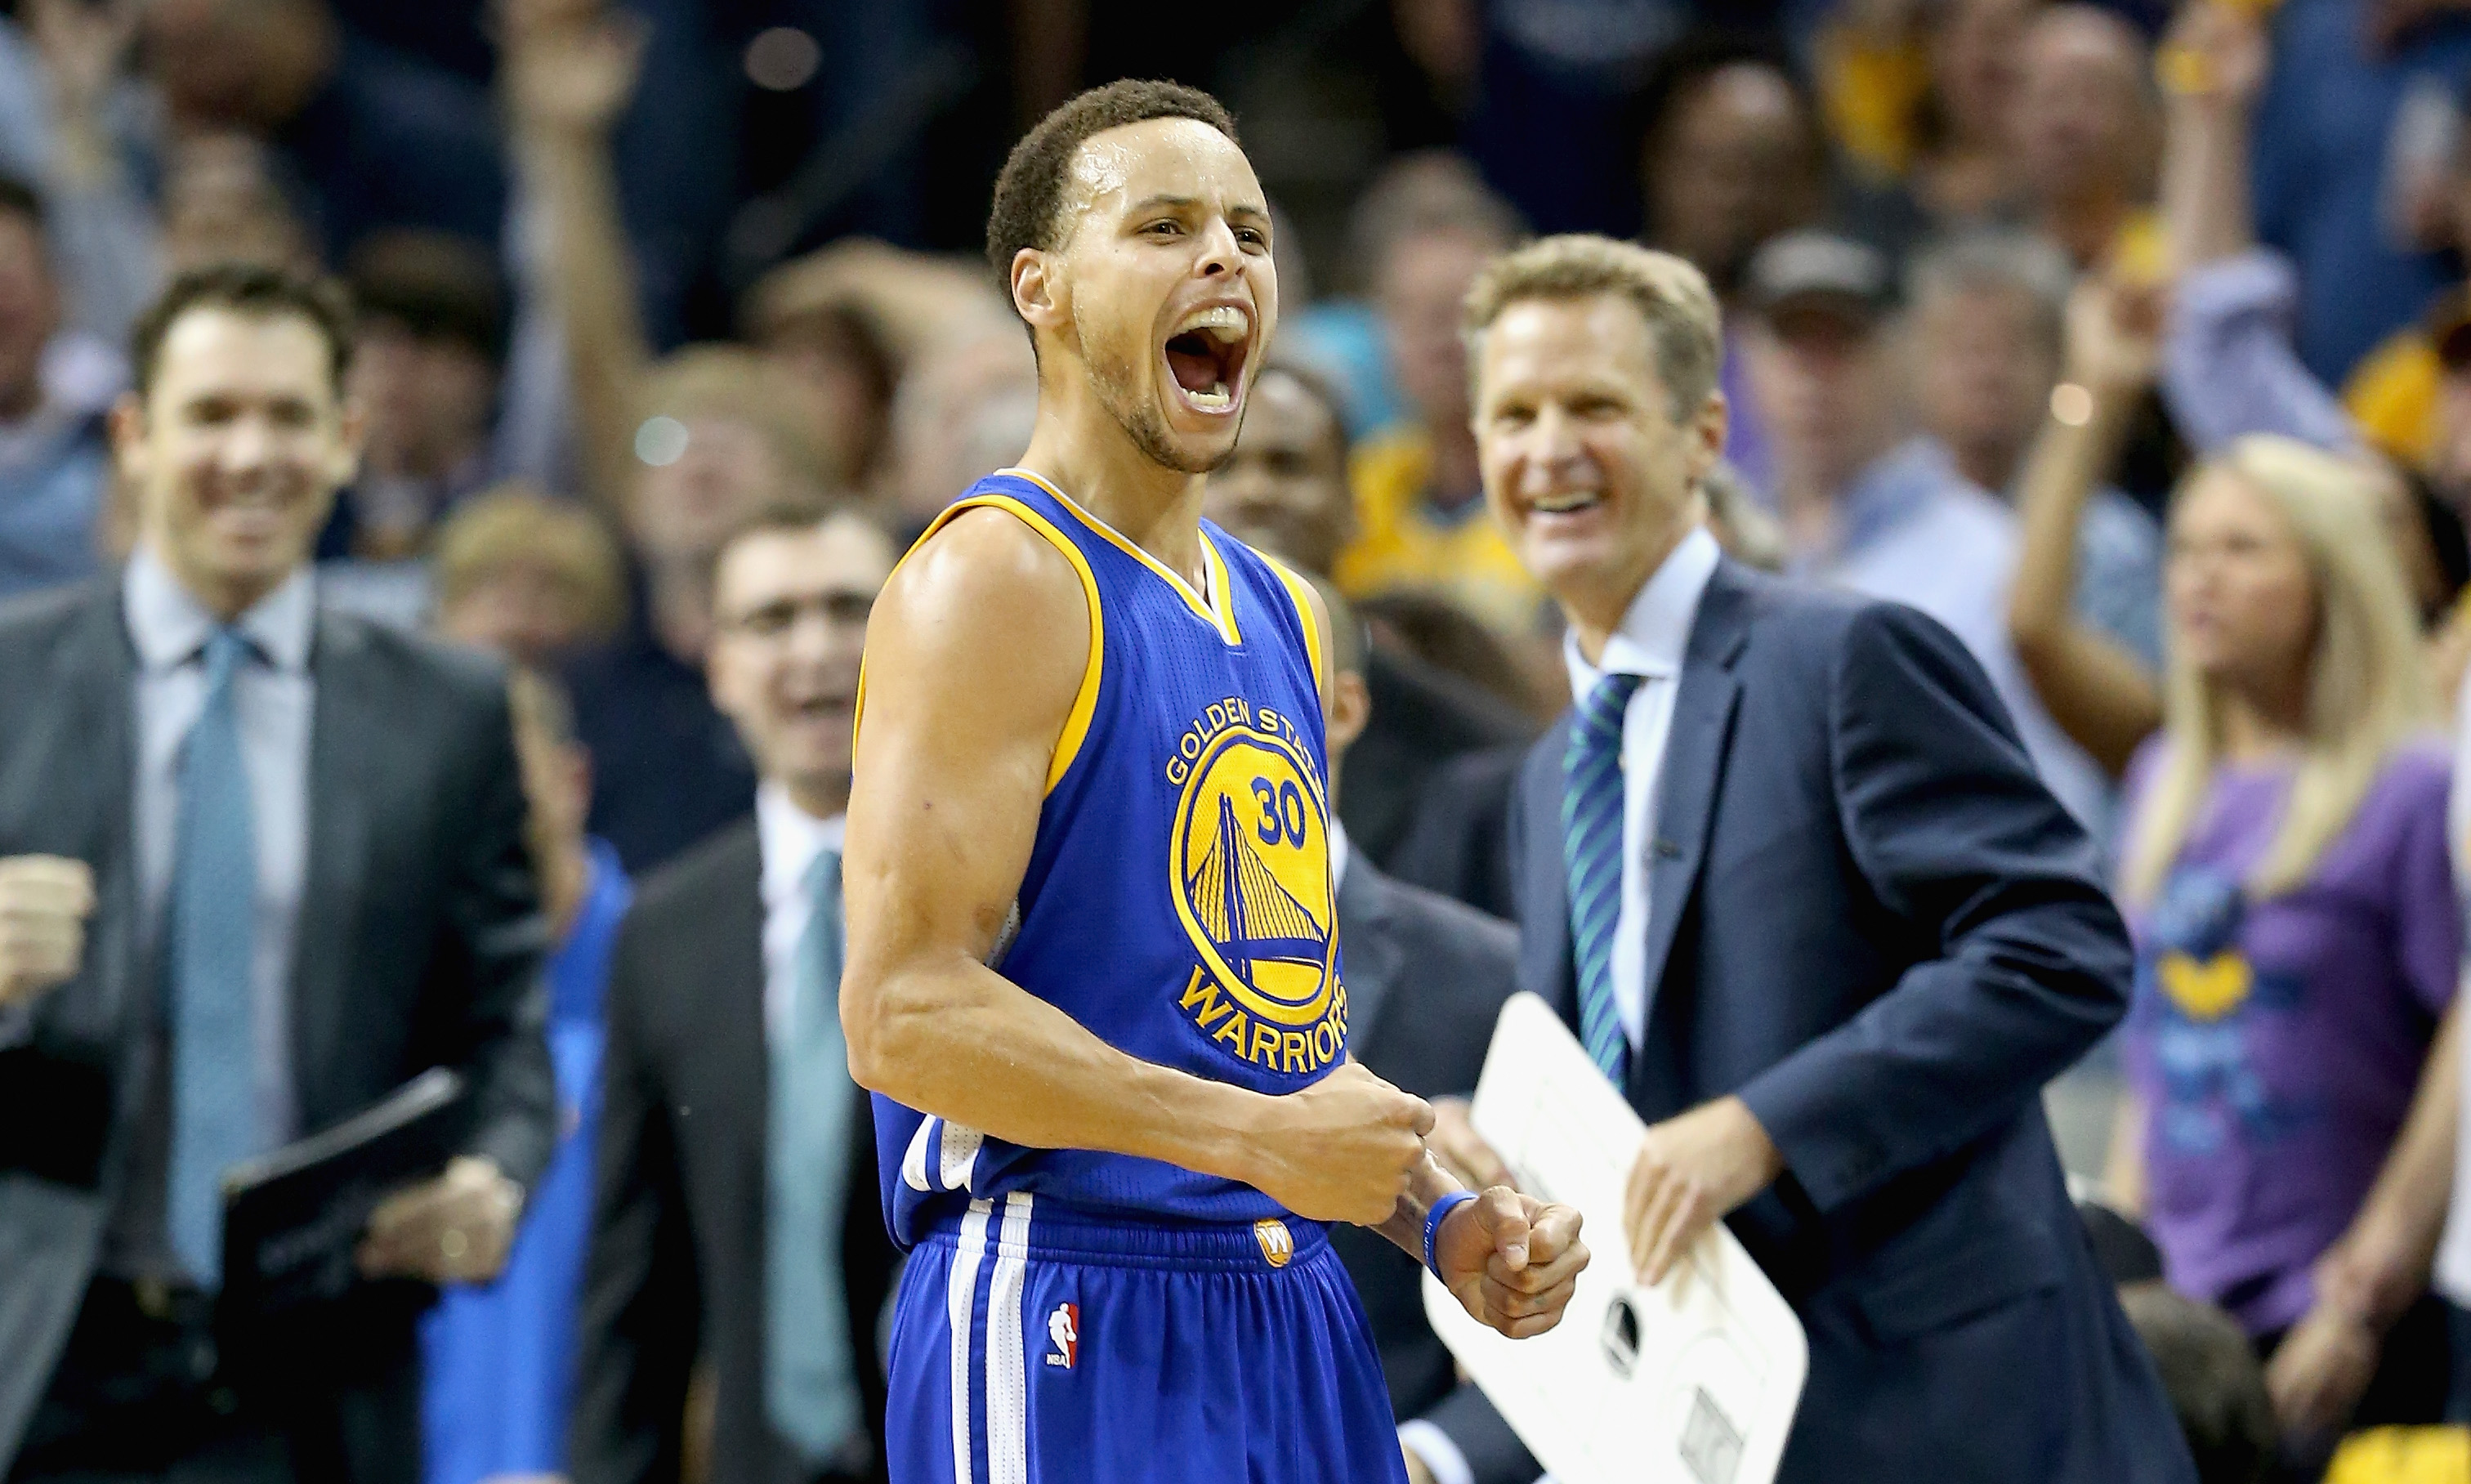 MEMPHIS, TN - MAY 15:  Stephen Curry #30 of the  Golden State Warriors celebrates after making a basket to end the third quarter against the Memphis Grizzlies during Game six of the Western Conference Semifinals of the 2015 NBA Playoffs at FedExForum on M